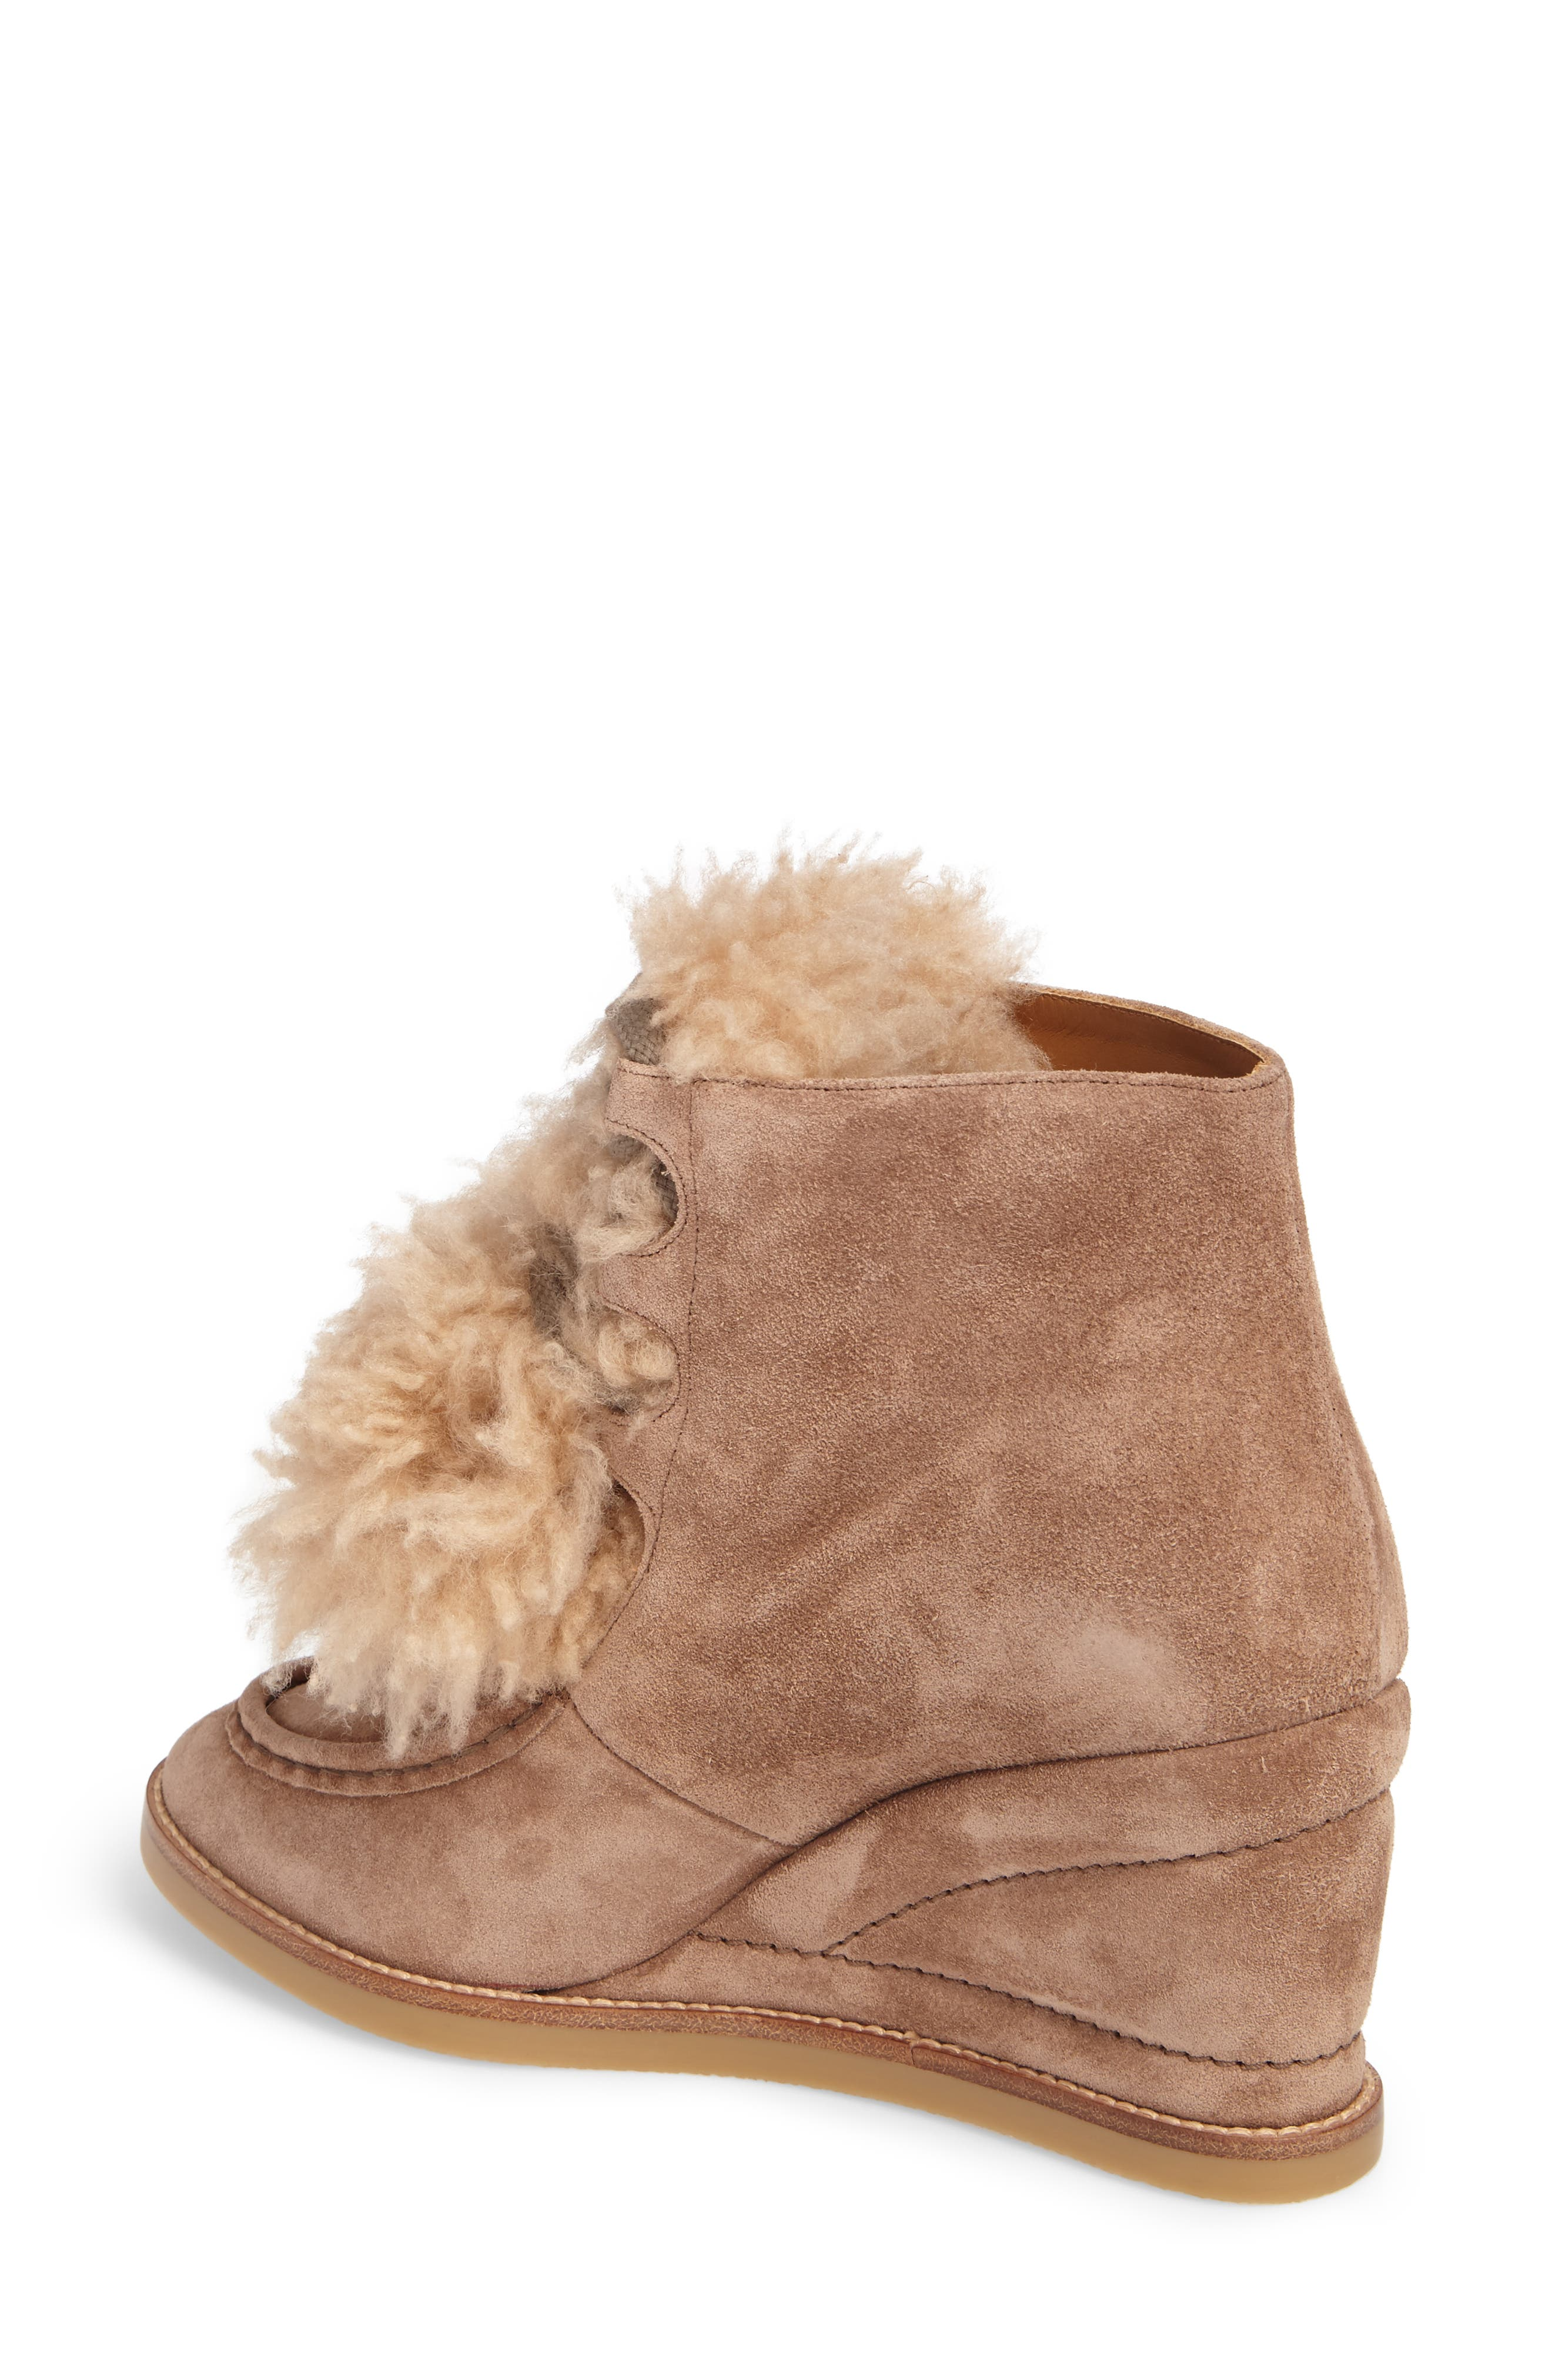 Peggy Genuine Shearling Wedge Bootie,                             Alternate thumbnail 2, color,                             Latte Brown Suede